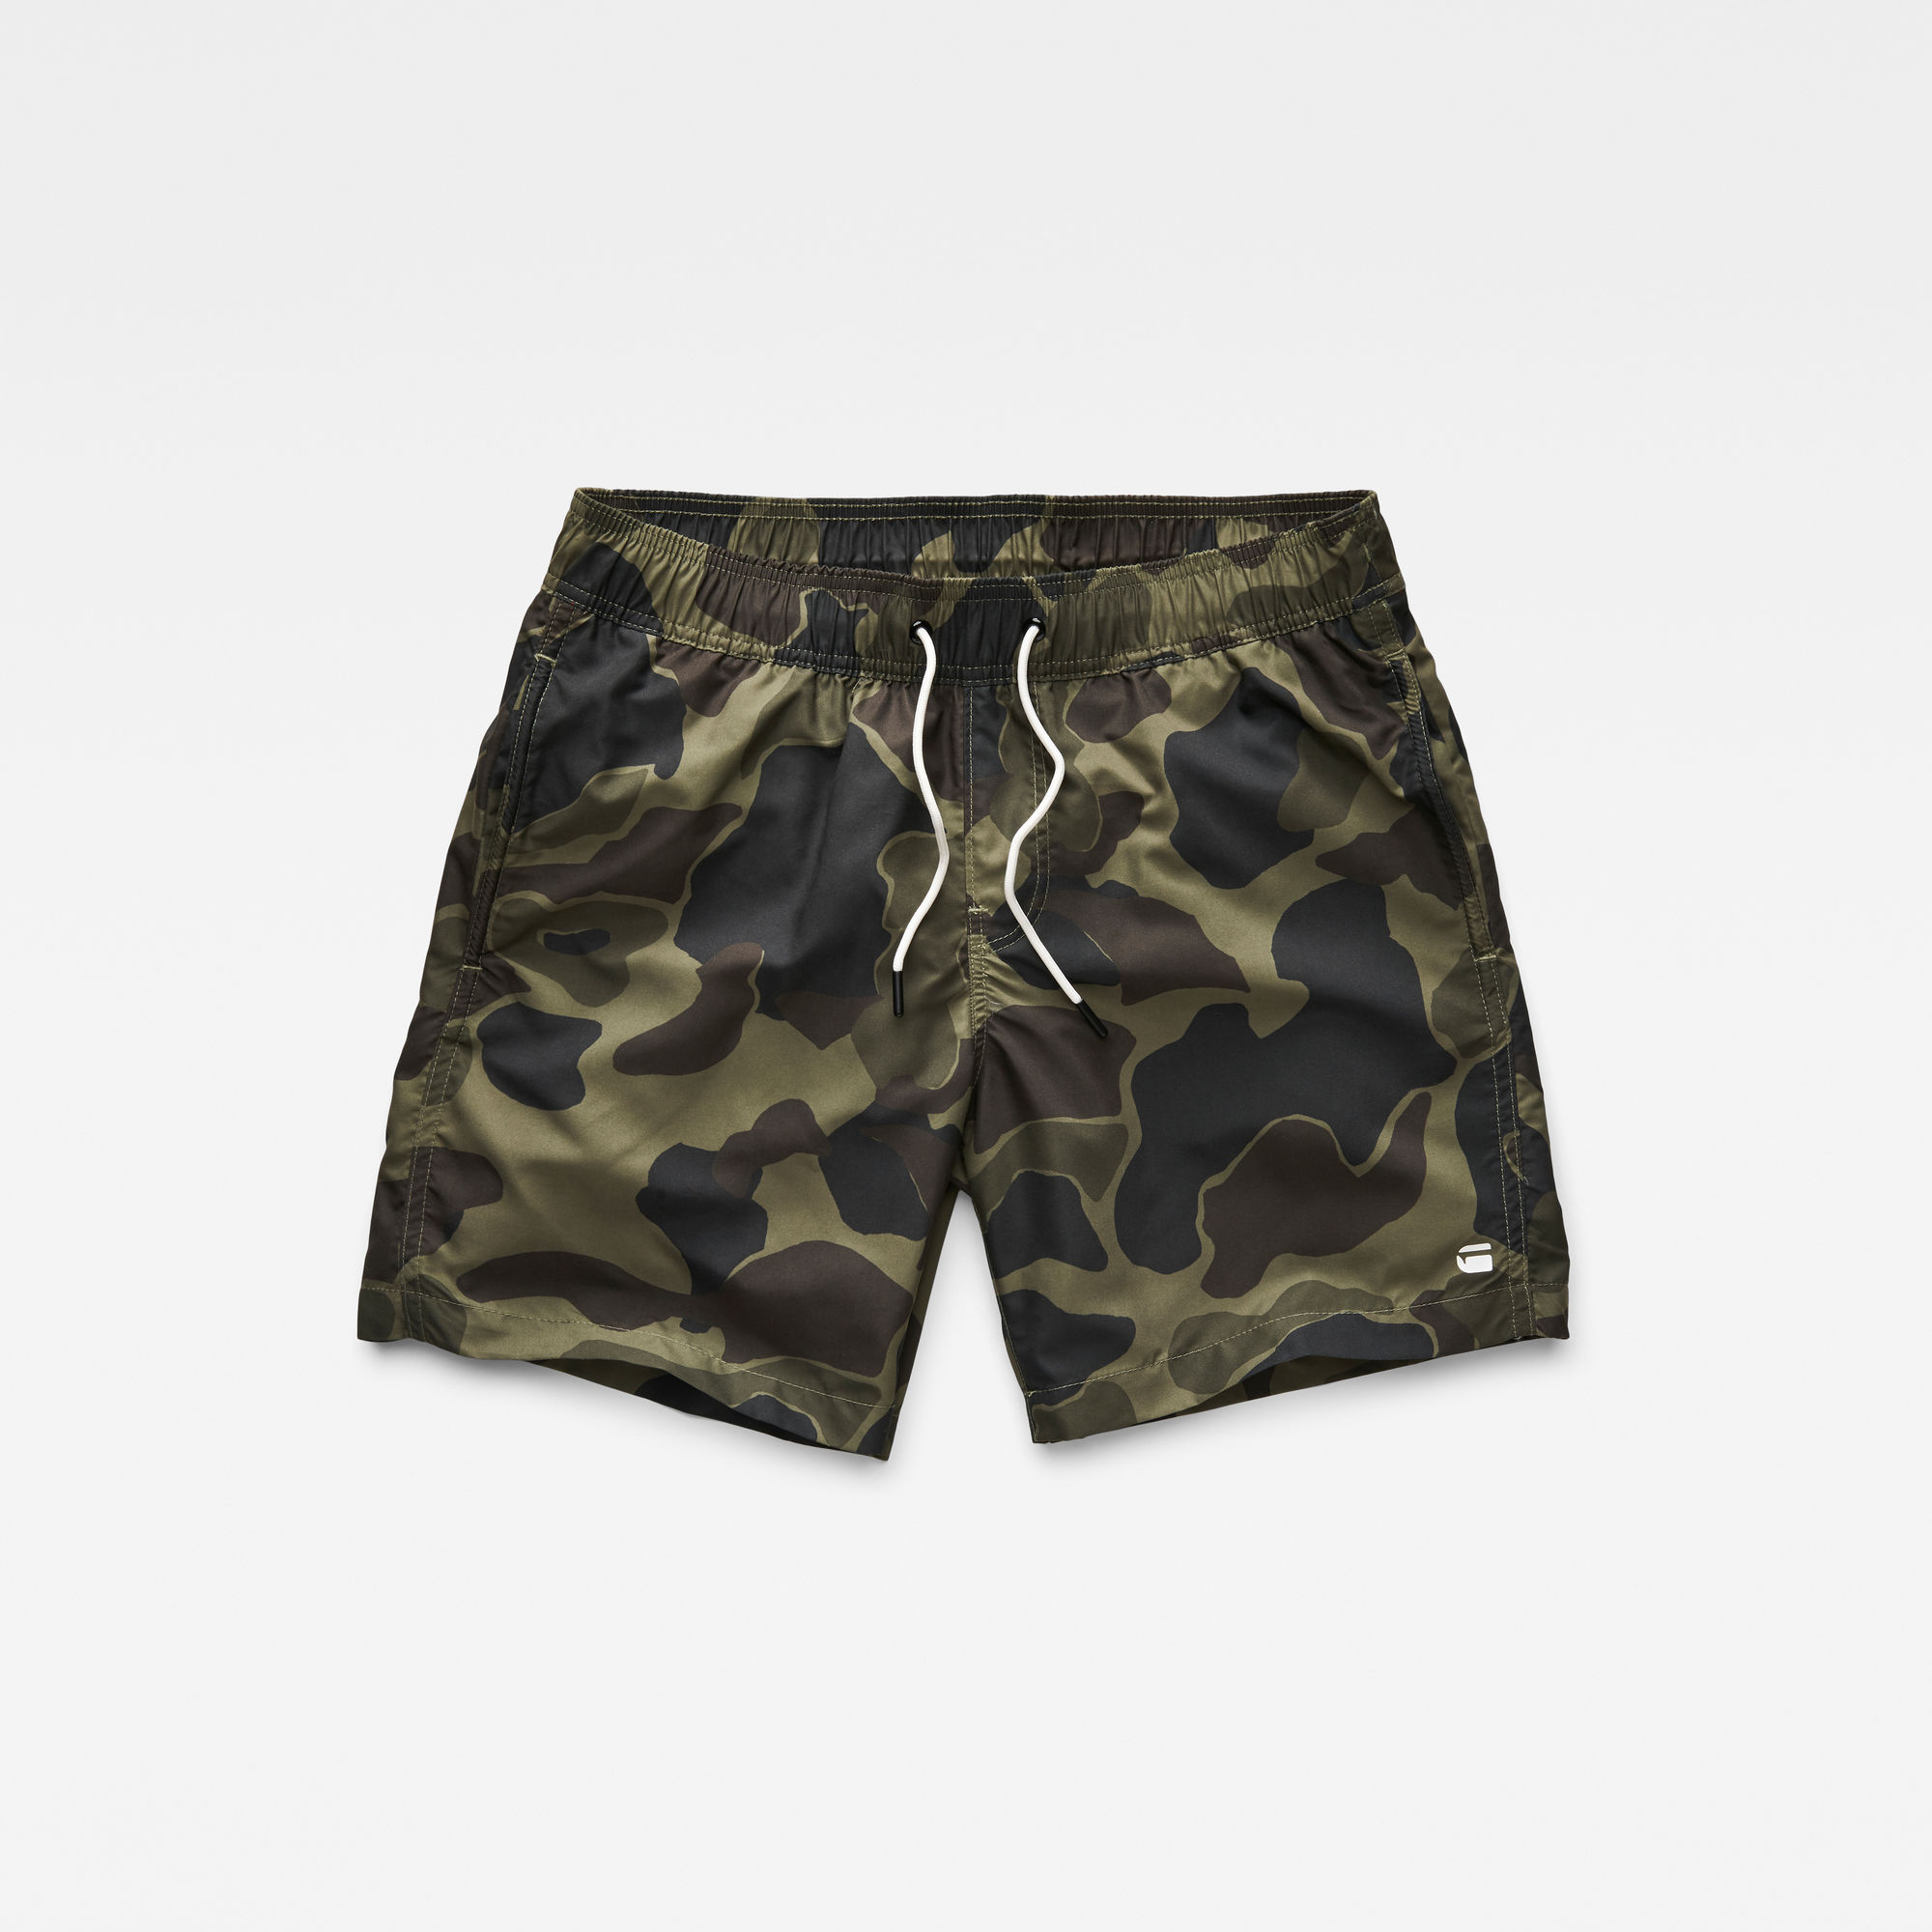 Image of G Star Raw Dirik Patterned Swimshort